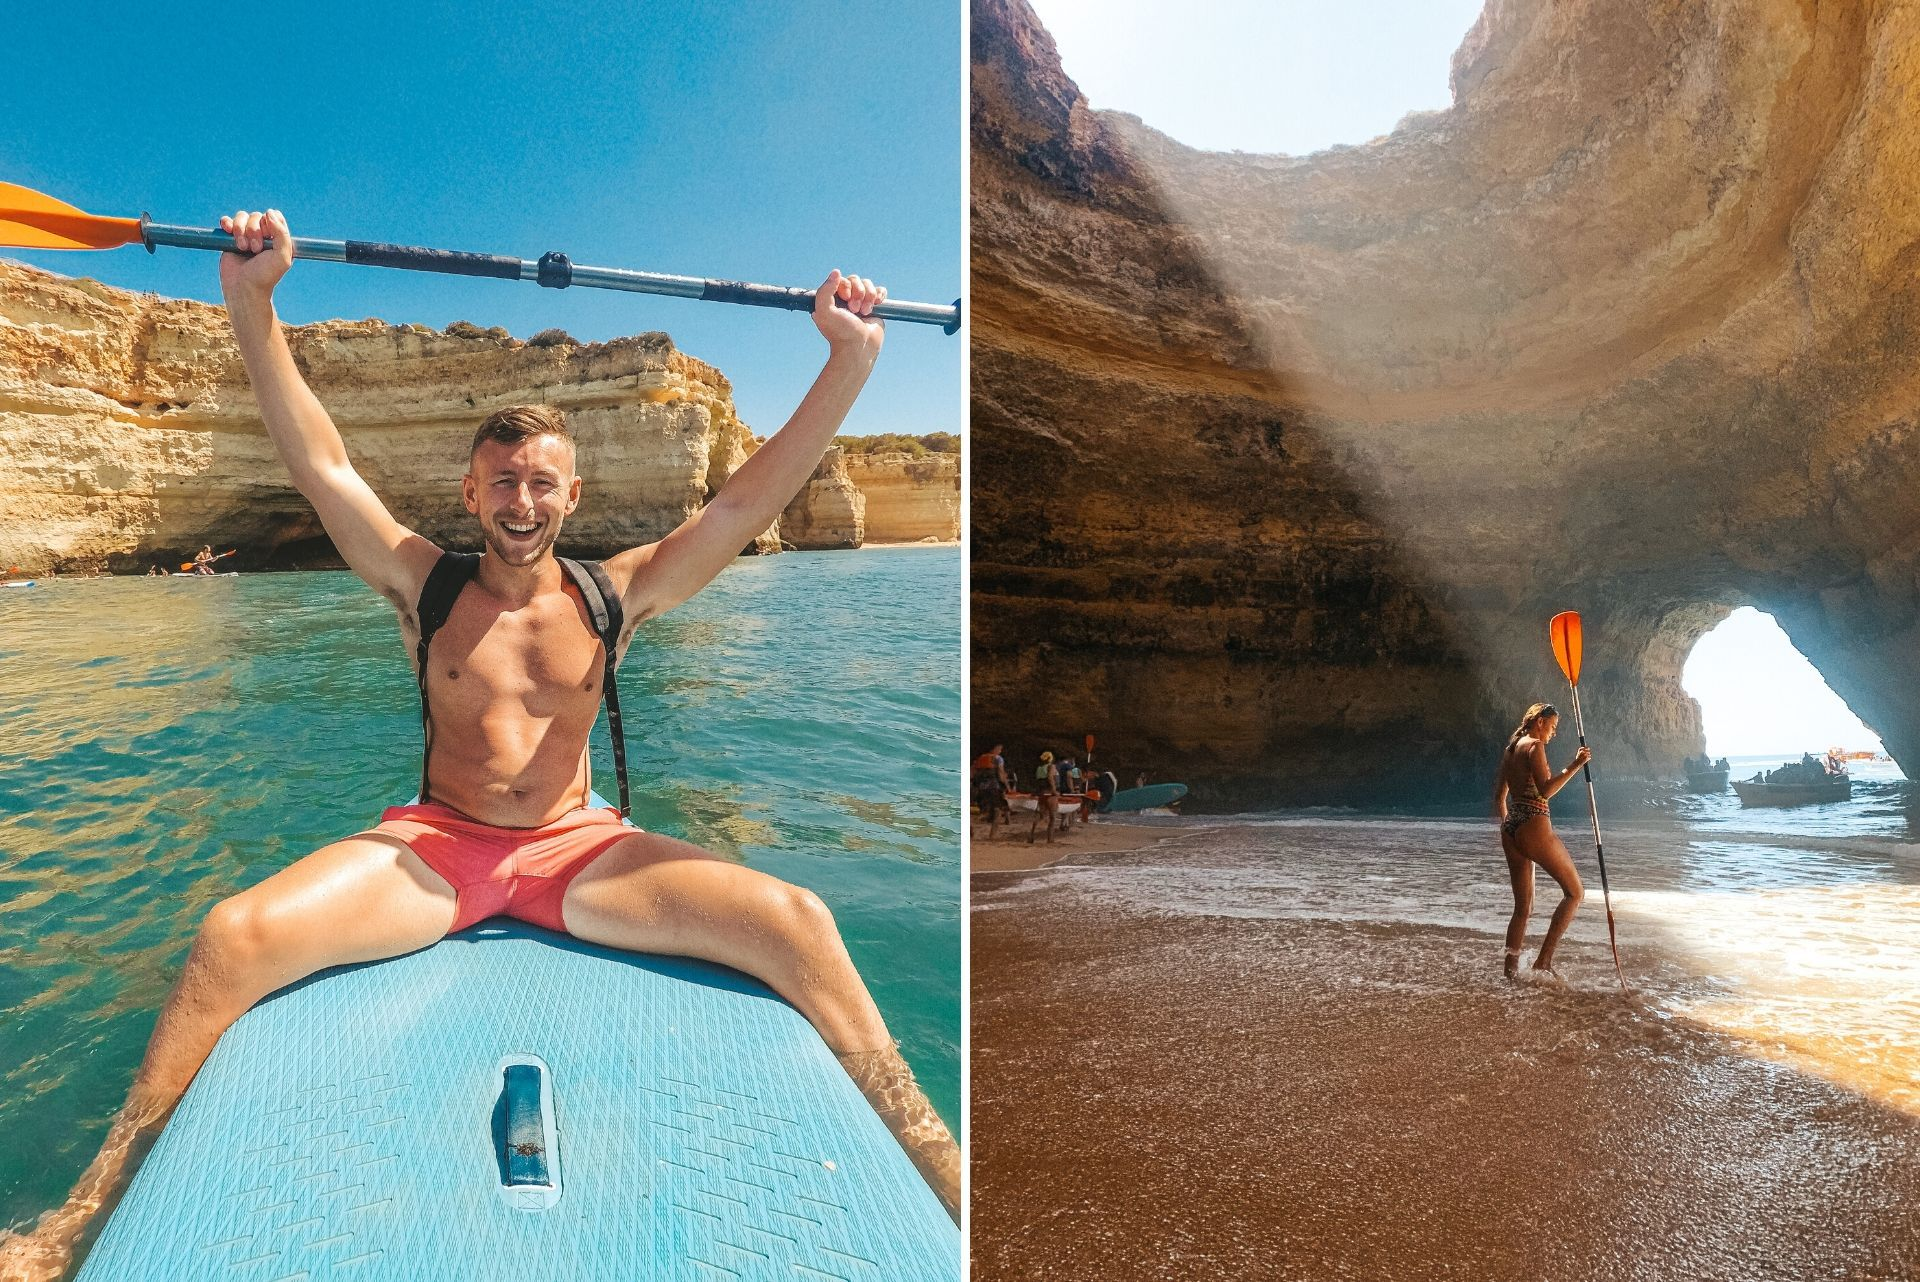 man-sitting-on-paddleboard-on-turquoise-waters-holding-paddle-in-the-air-and-girl-in-beach-inside-cave-holding-paddle